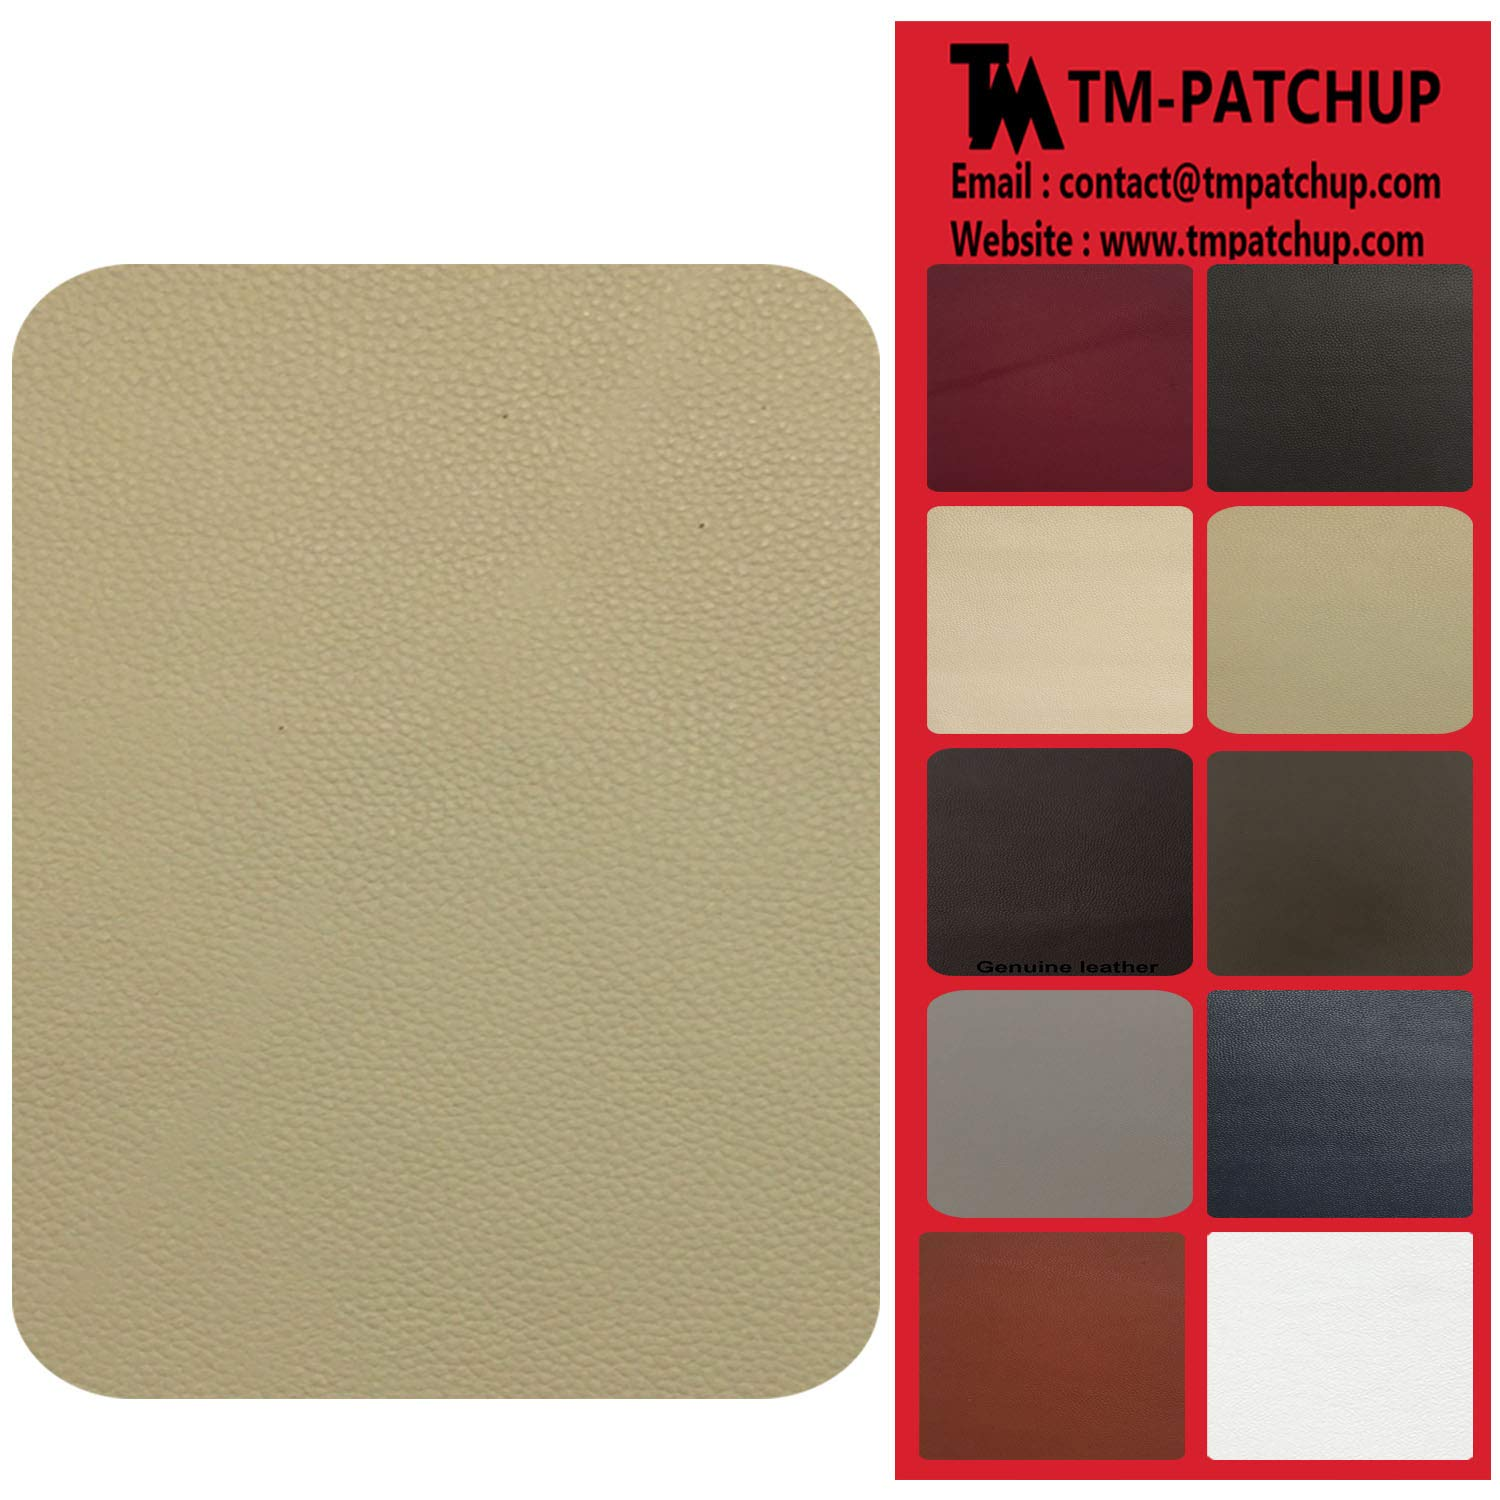 Medium Beige Leather and Vinyl Repair Patch by TMgroup, Genuine Faux Leather Repair Patch, Peel and Stick for Couch, Sofas, car Seats, Hand Bags,Furniture, Jackets, Large Size 3'' x 6'' (2) TMpatchup